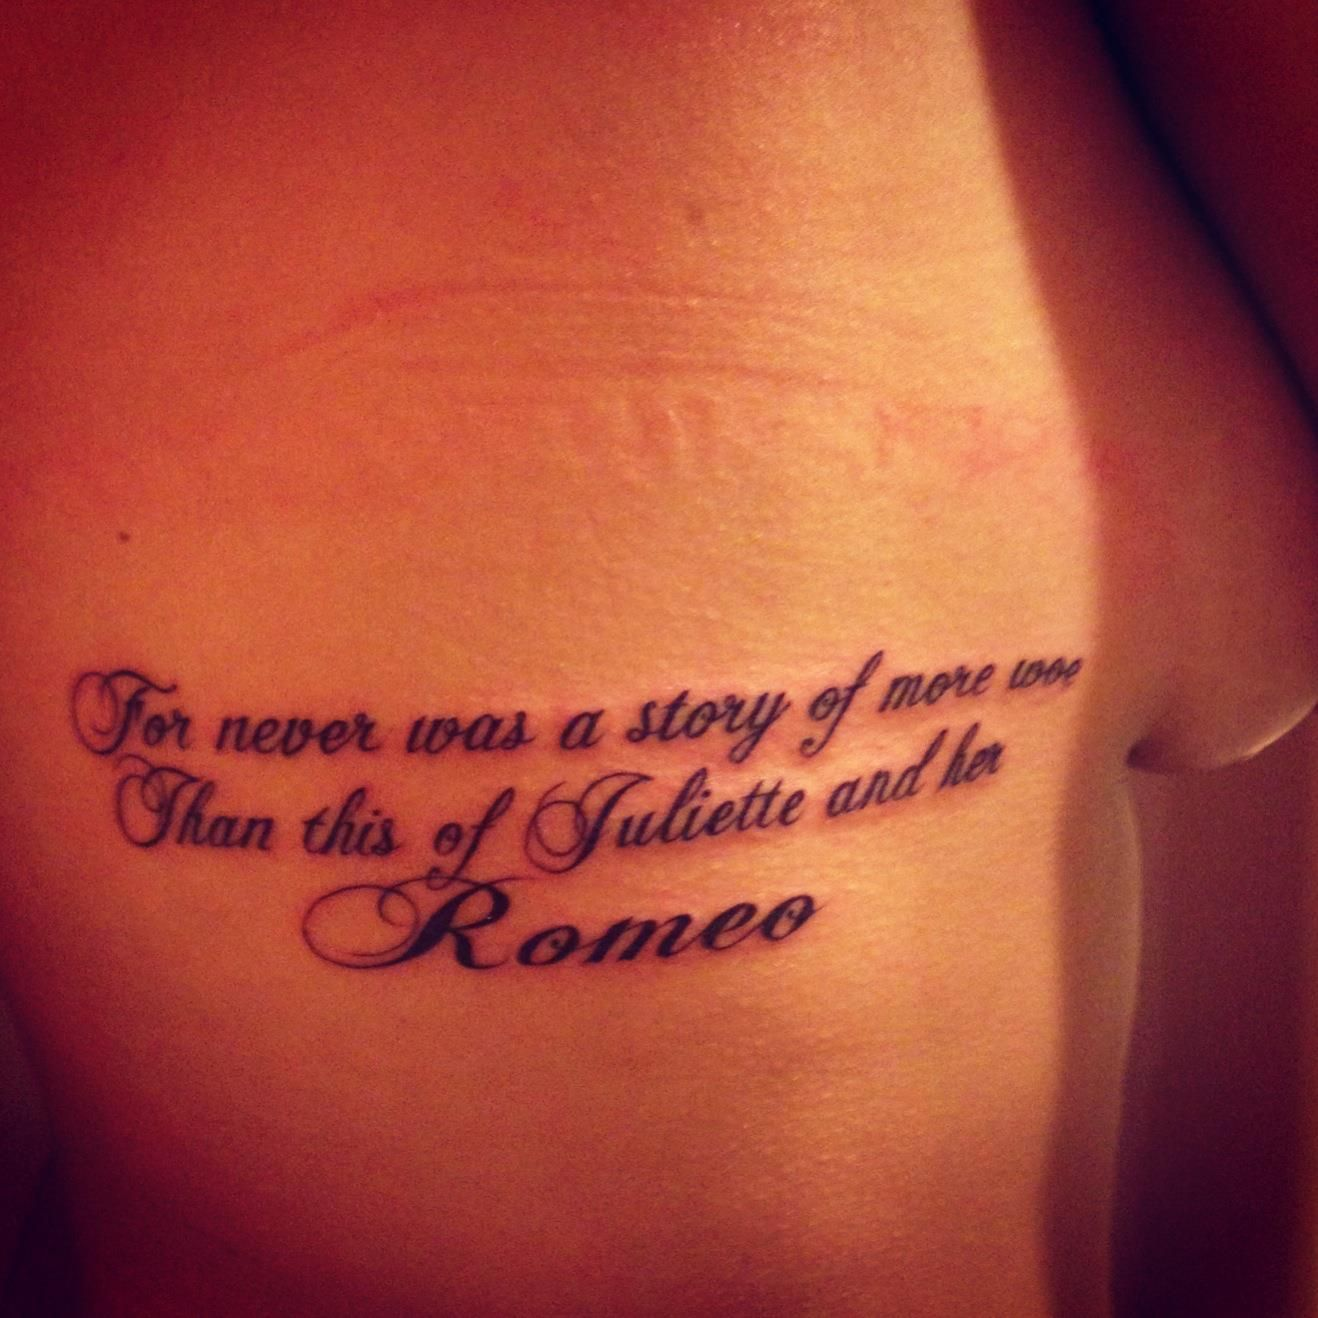 Romeo And Juliet Quotes And Meanings: My Romeo And Juliet Quote Tattoo Shakespeare